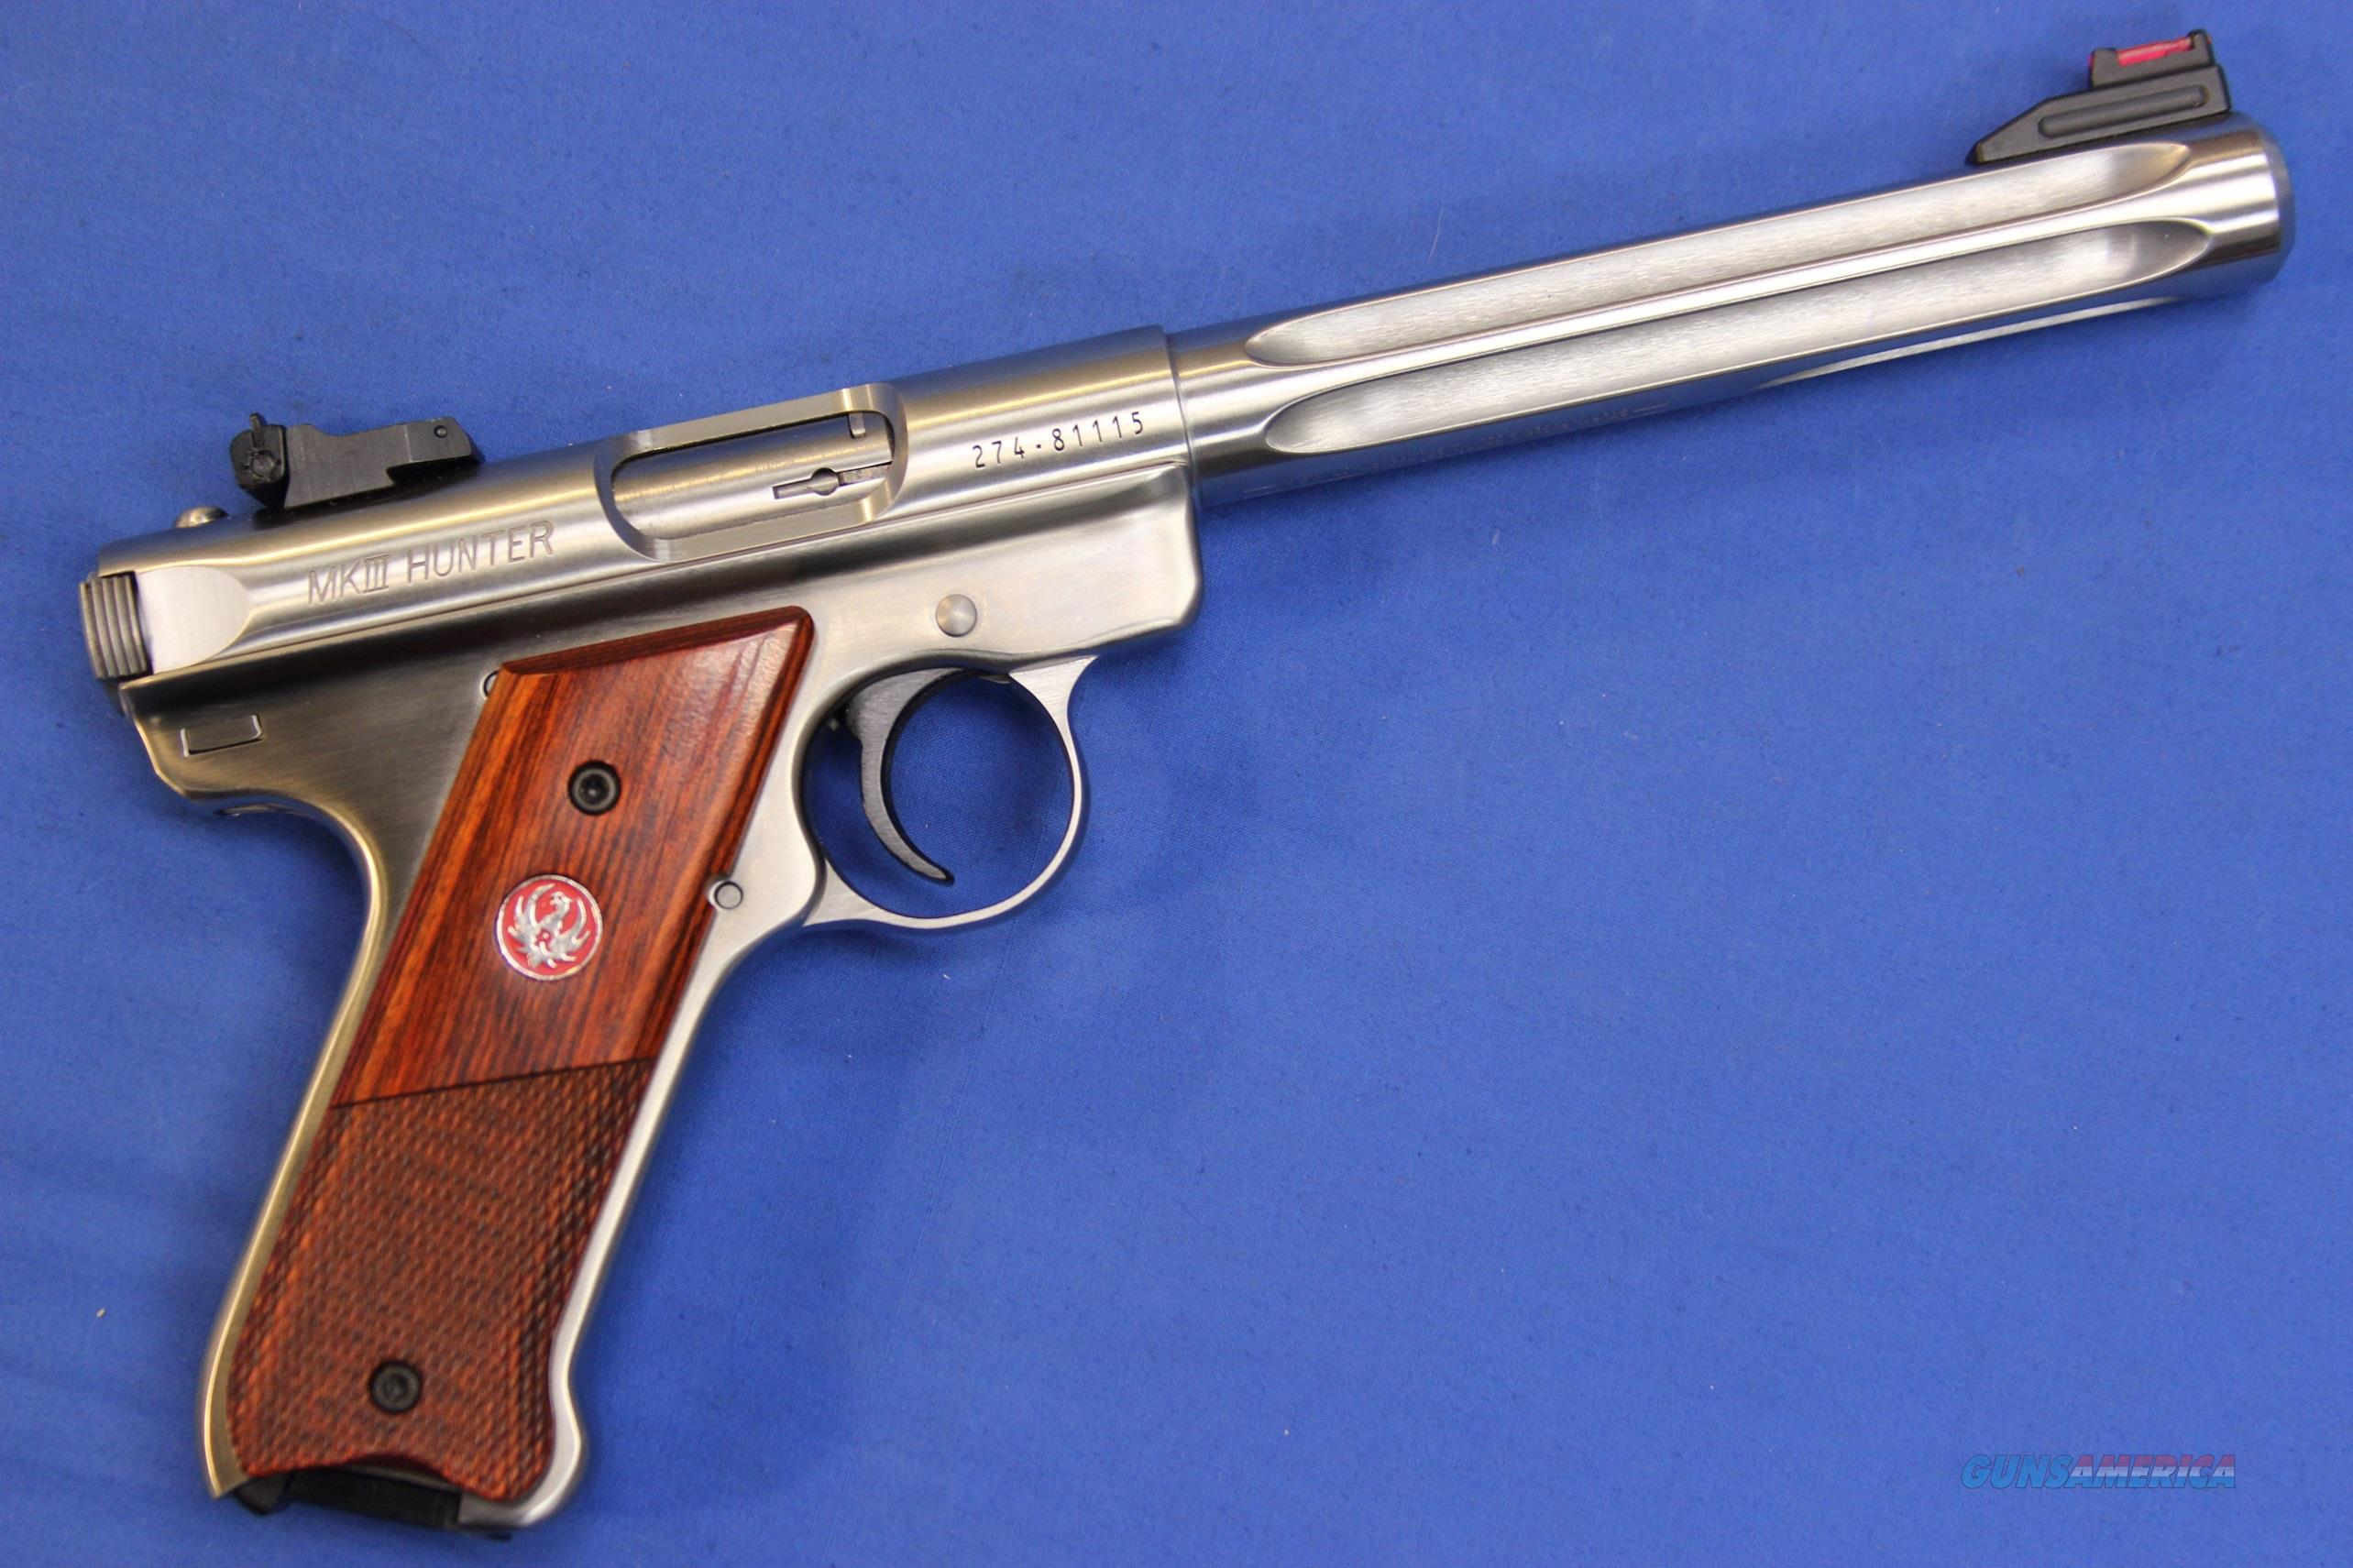 "RUGER MK III HUNTER .22 LR 6.78"" STAINLESS - LIKE NEW w/ BOX   Guns > Pistols > Ruger Semi-Auto Pistols > Mark I/II/III Family"